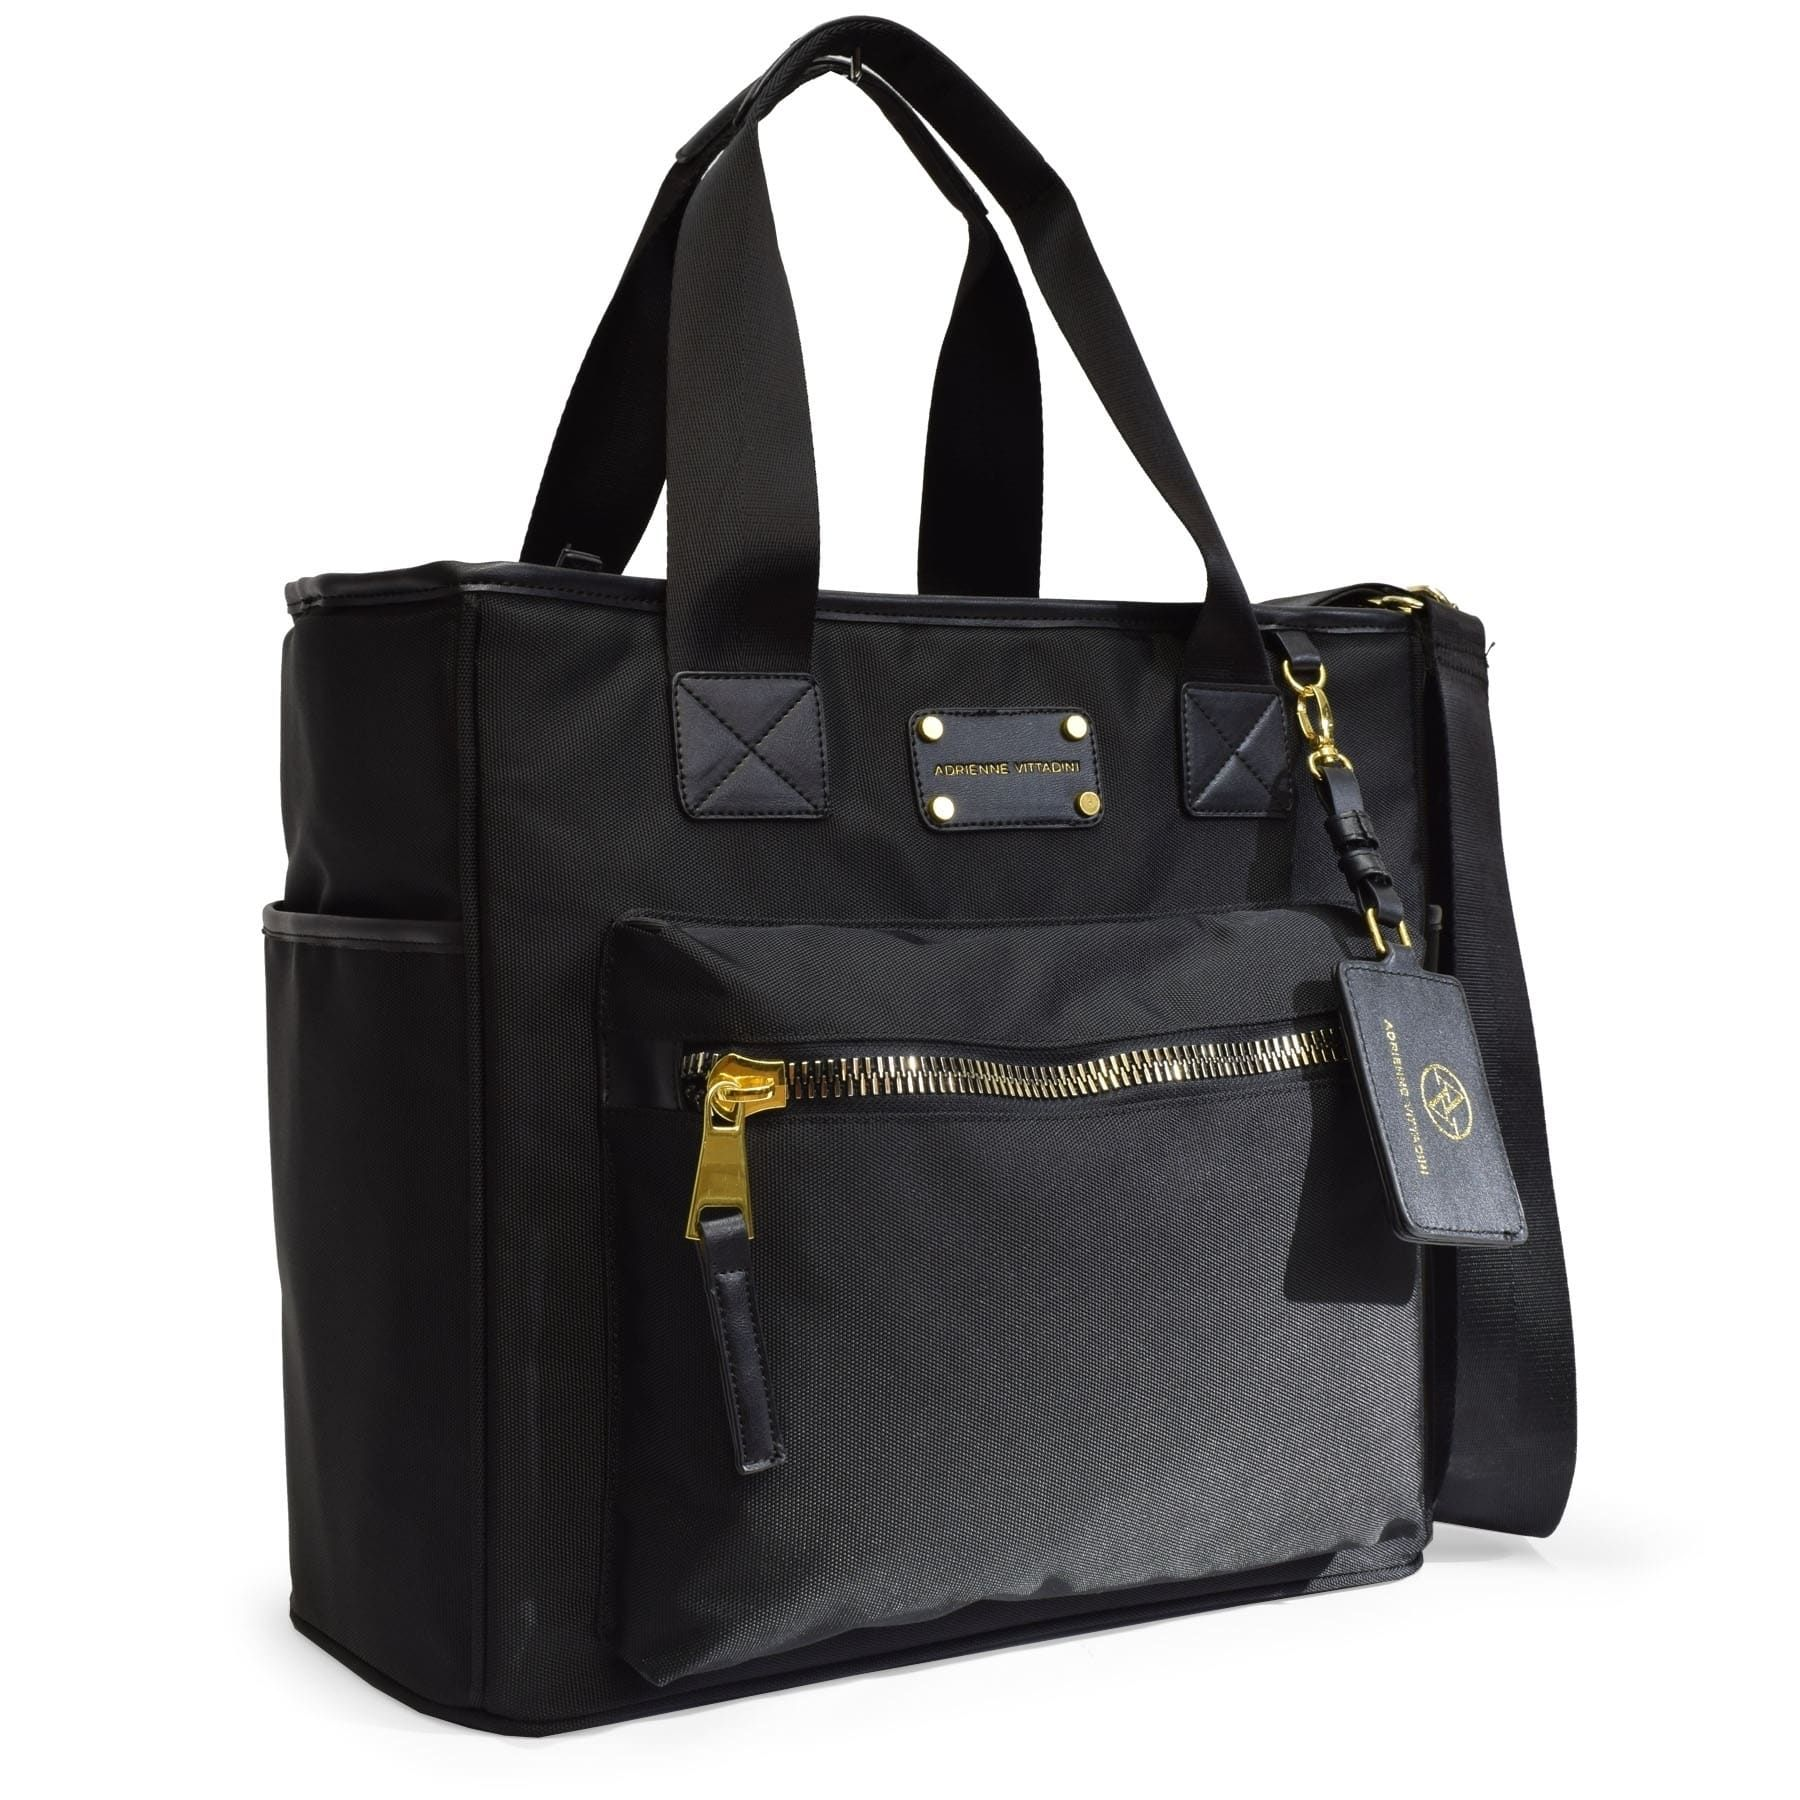 77c211ef8a90 Quilted Nylon Tote Bag With Laptop Sleeve By Adrienne Vittadini in ...